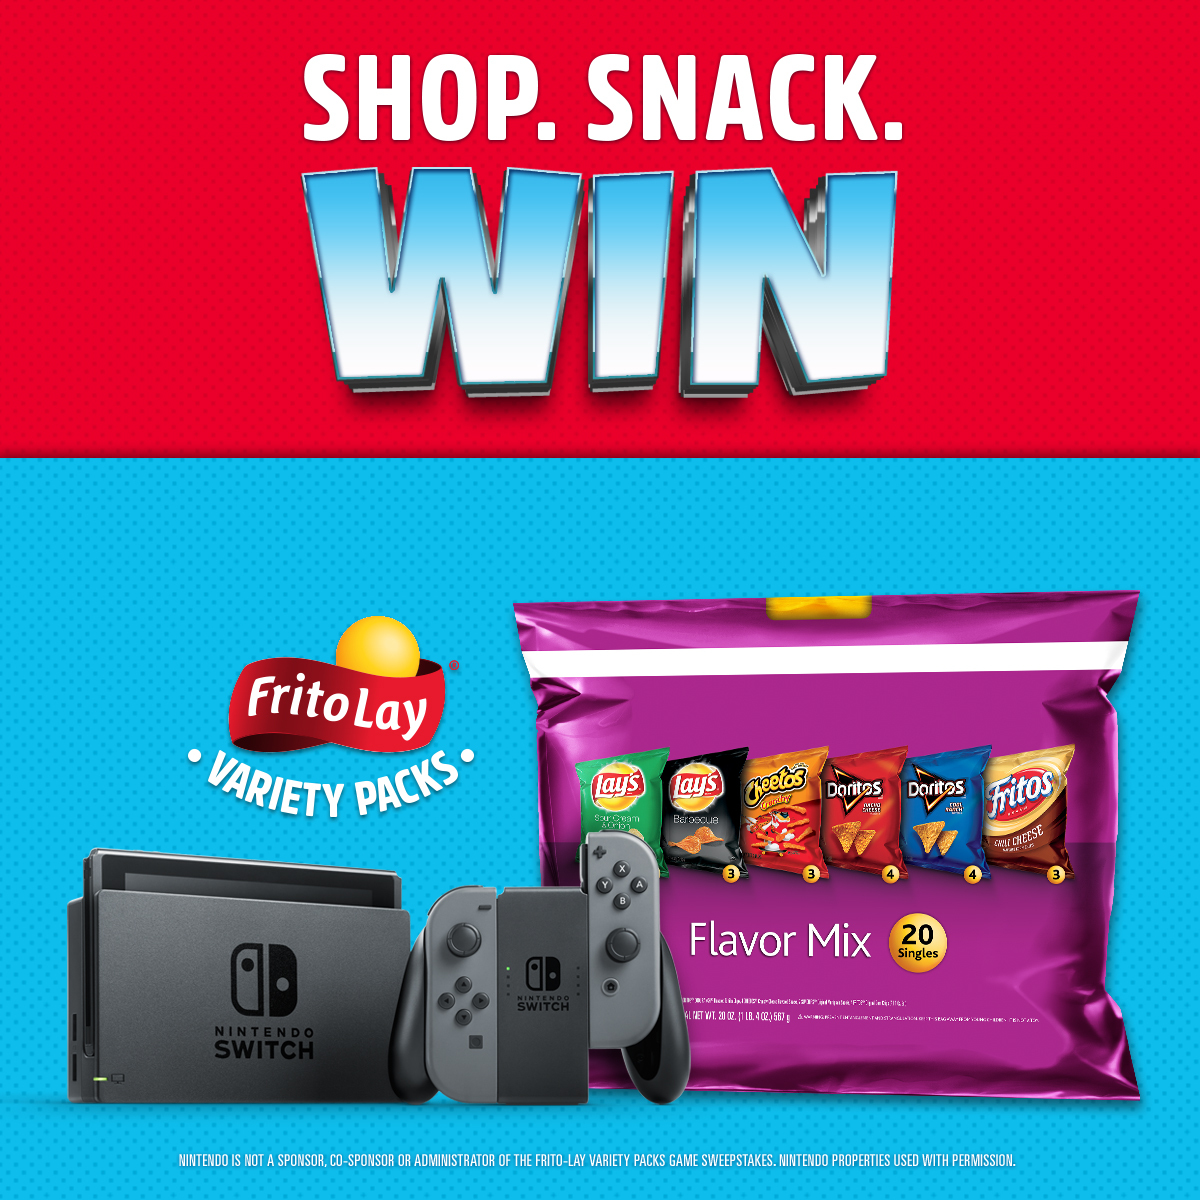 Between now and July 8, Frito-Lay is giving away one Nintendo Switch system and a game every single hour! (Graphic: Business Wire)